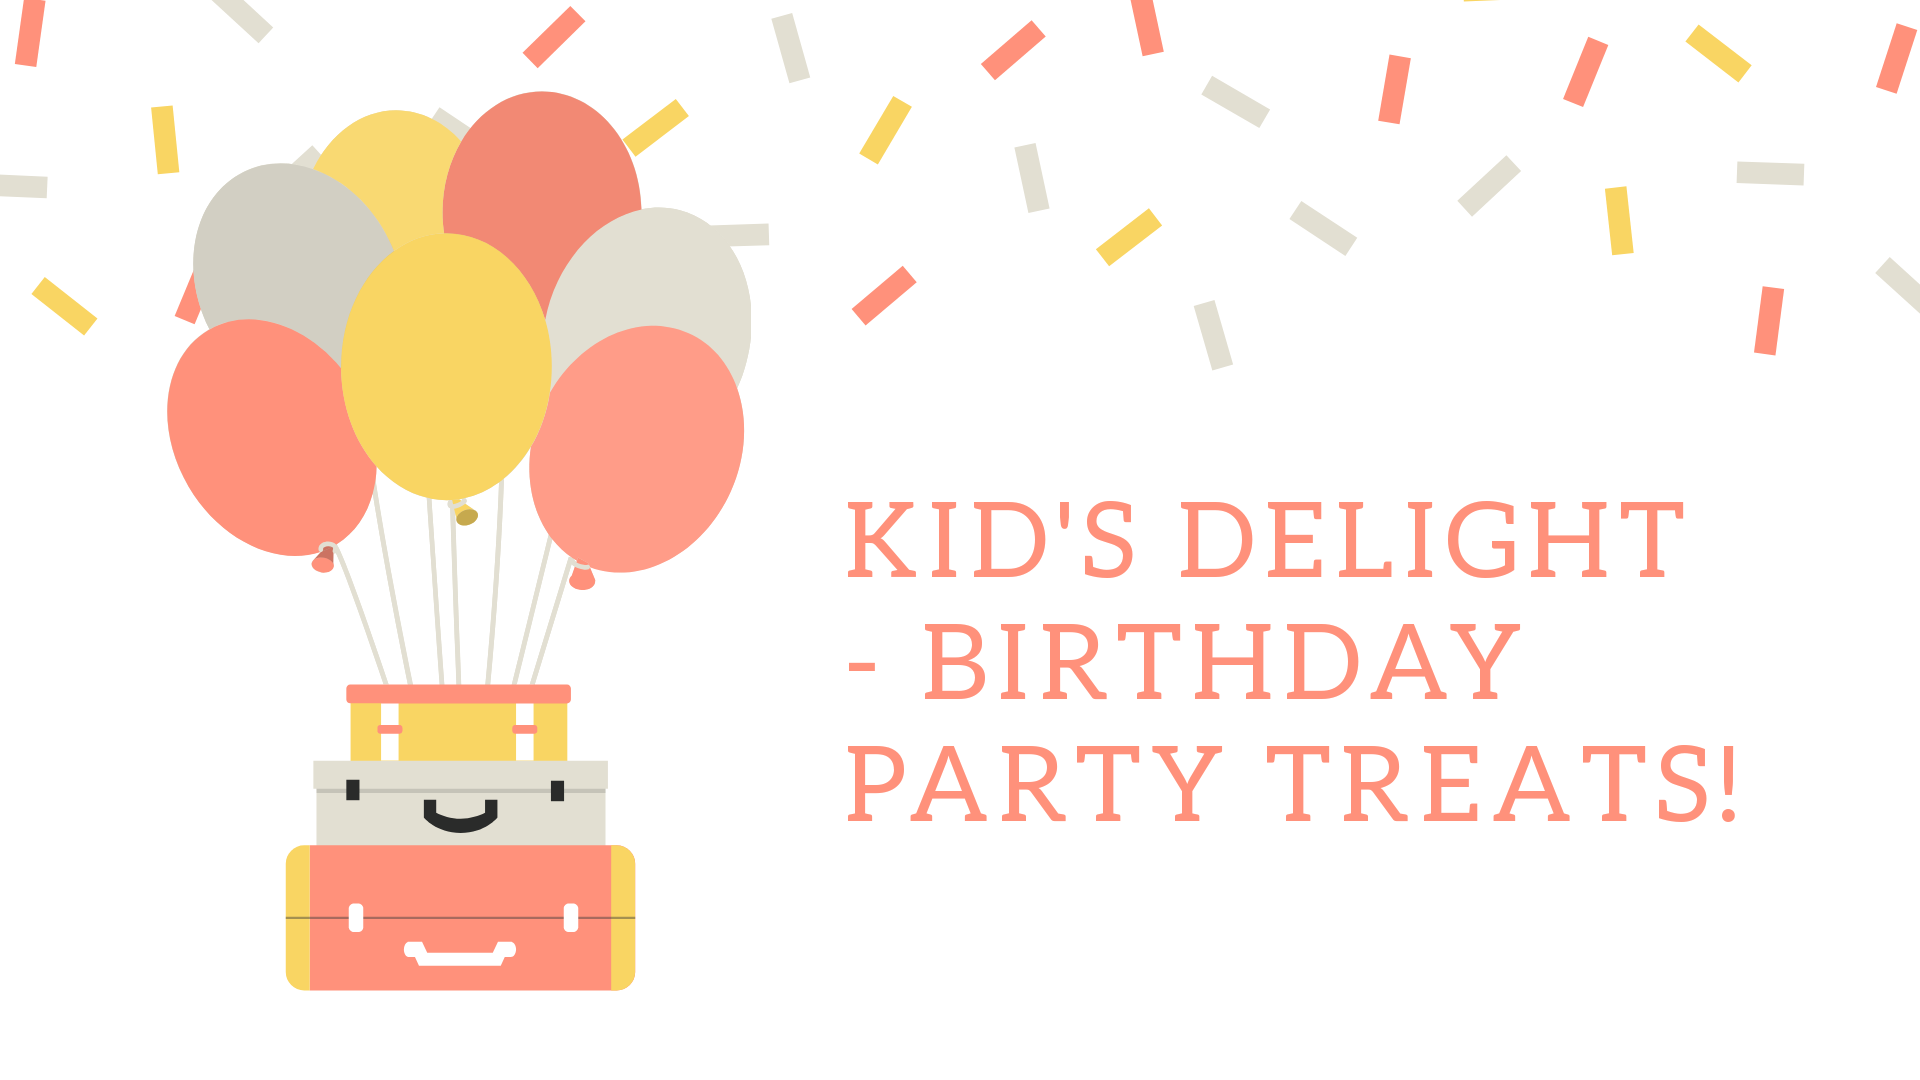 kids delight event - birthday party treats